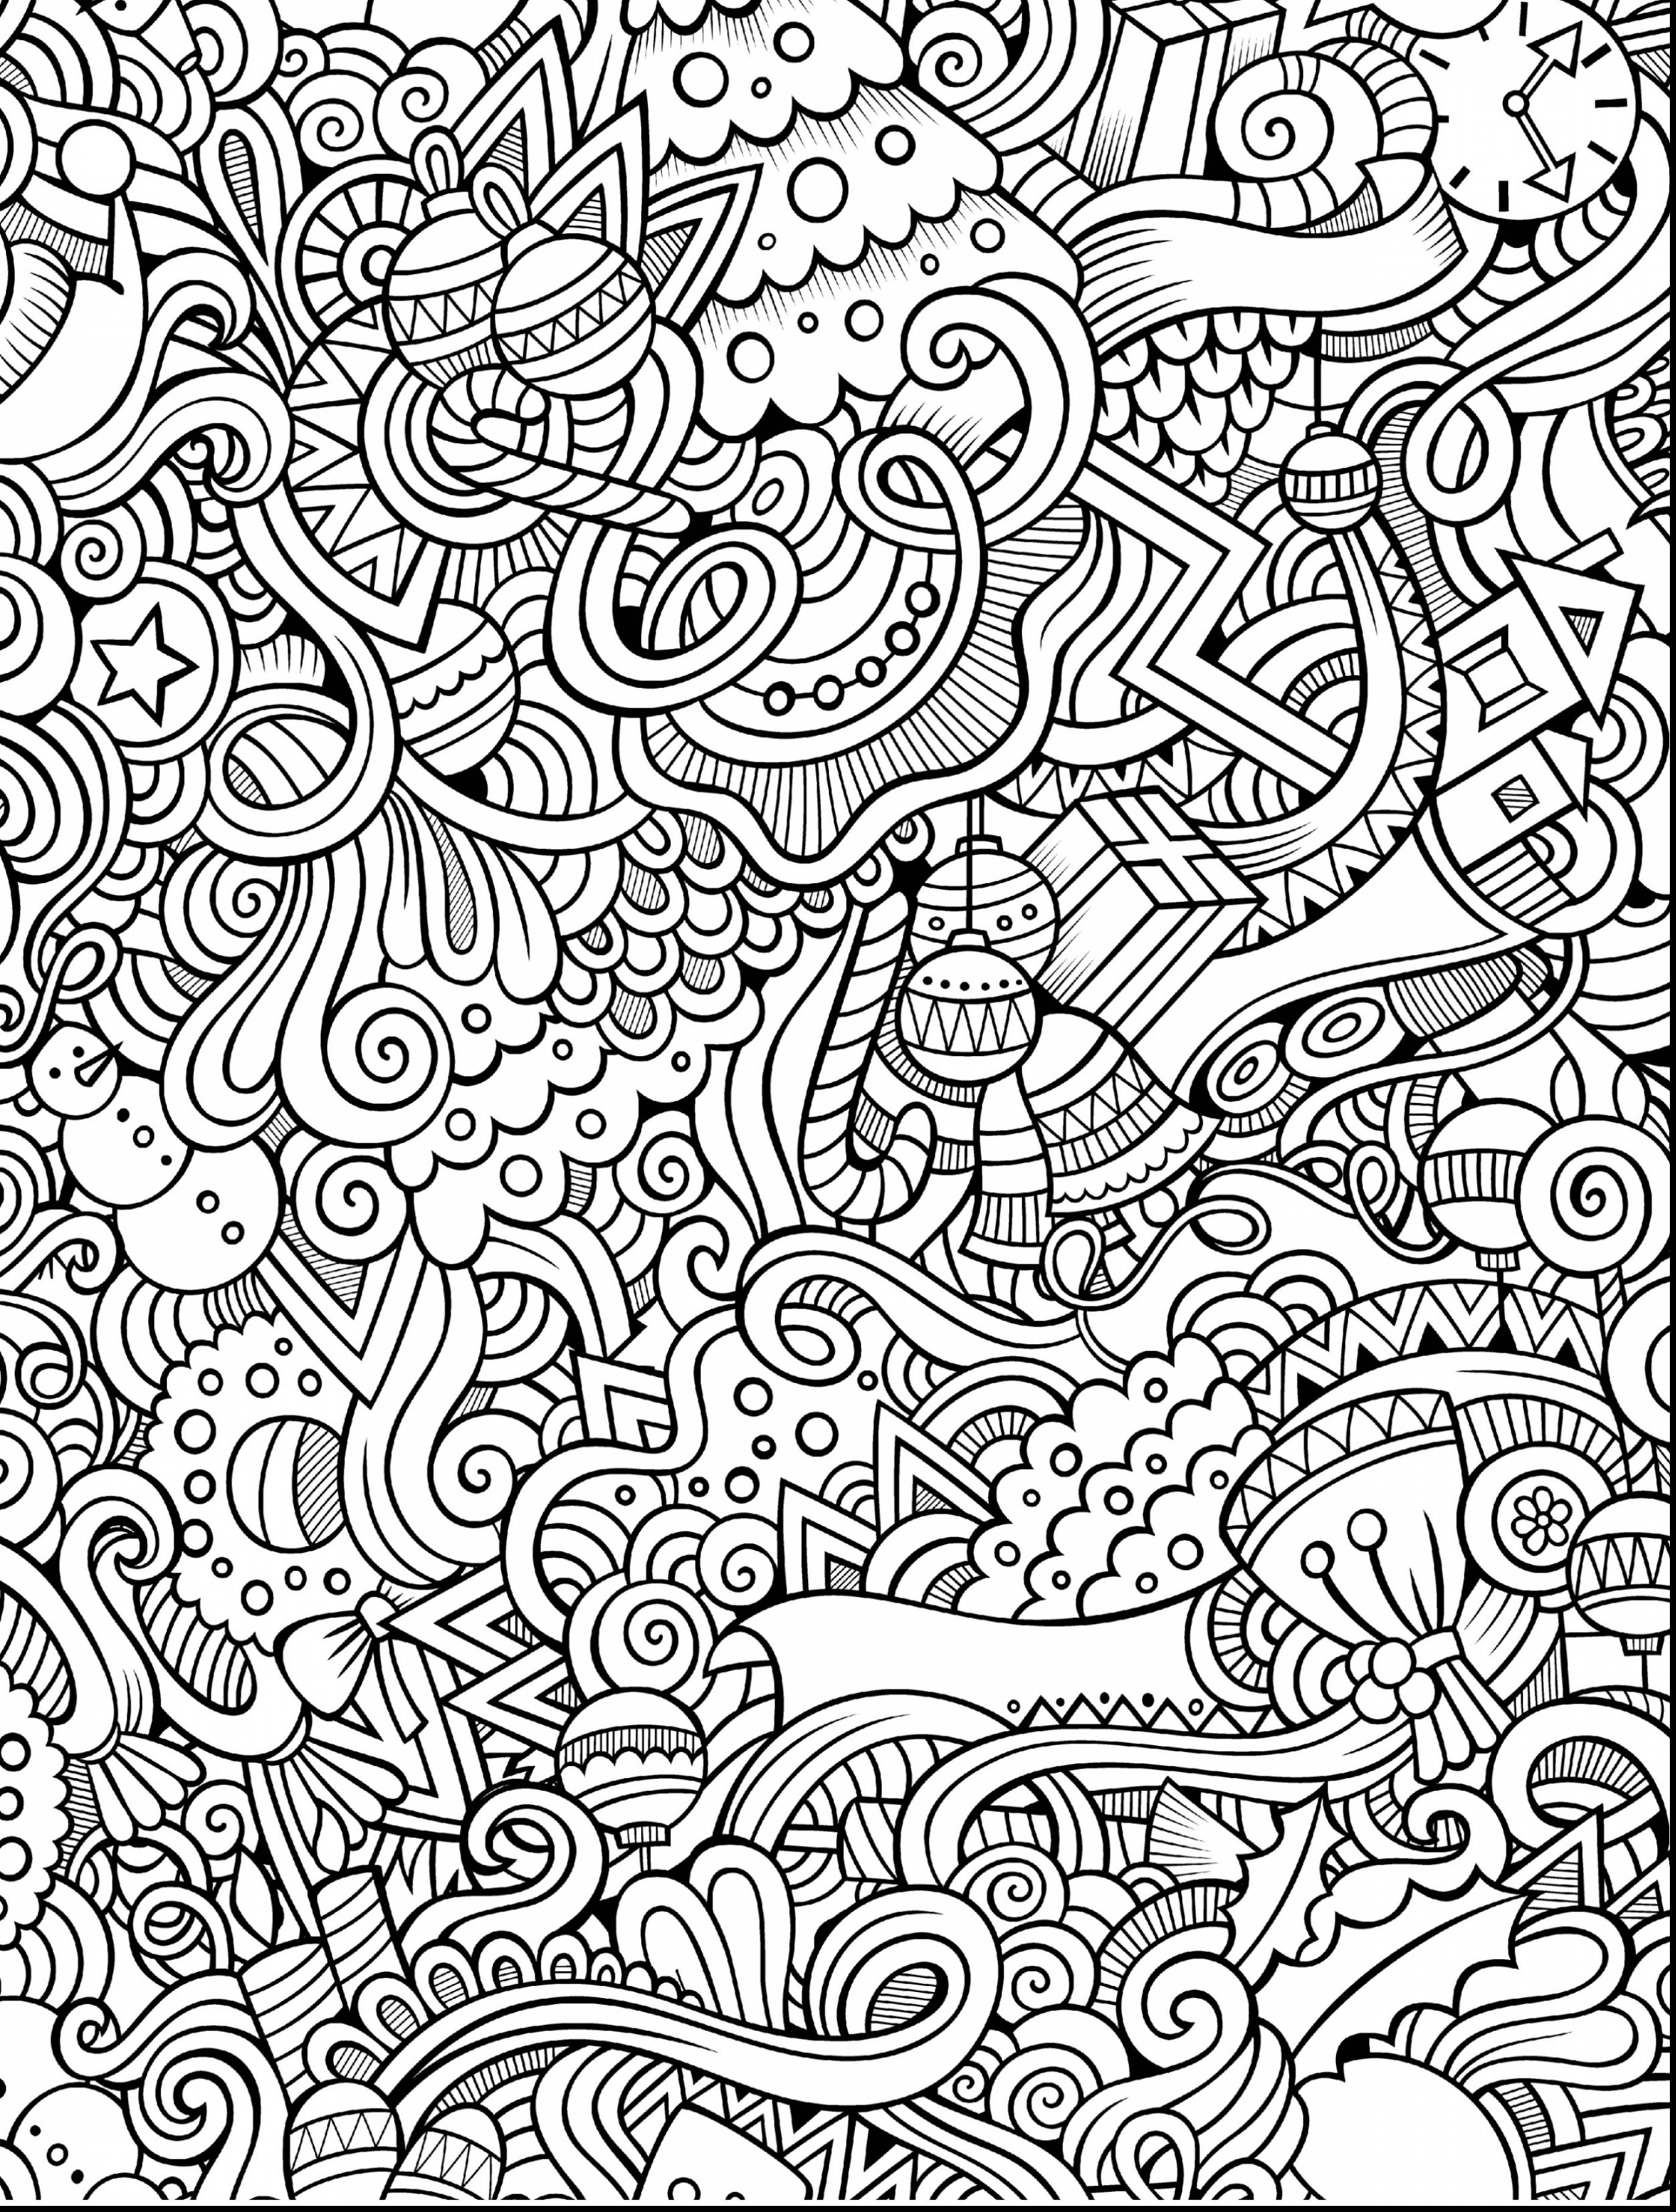 Hard Coloring Pages At Getdrawings Com Free For Personal Use Hard